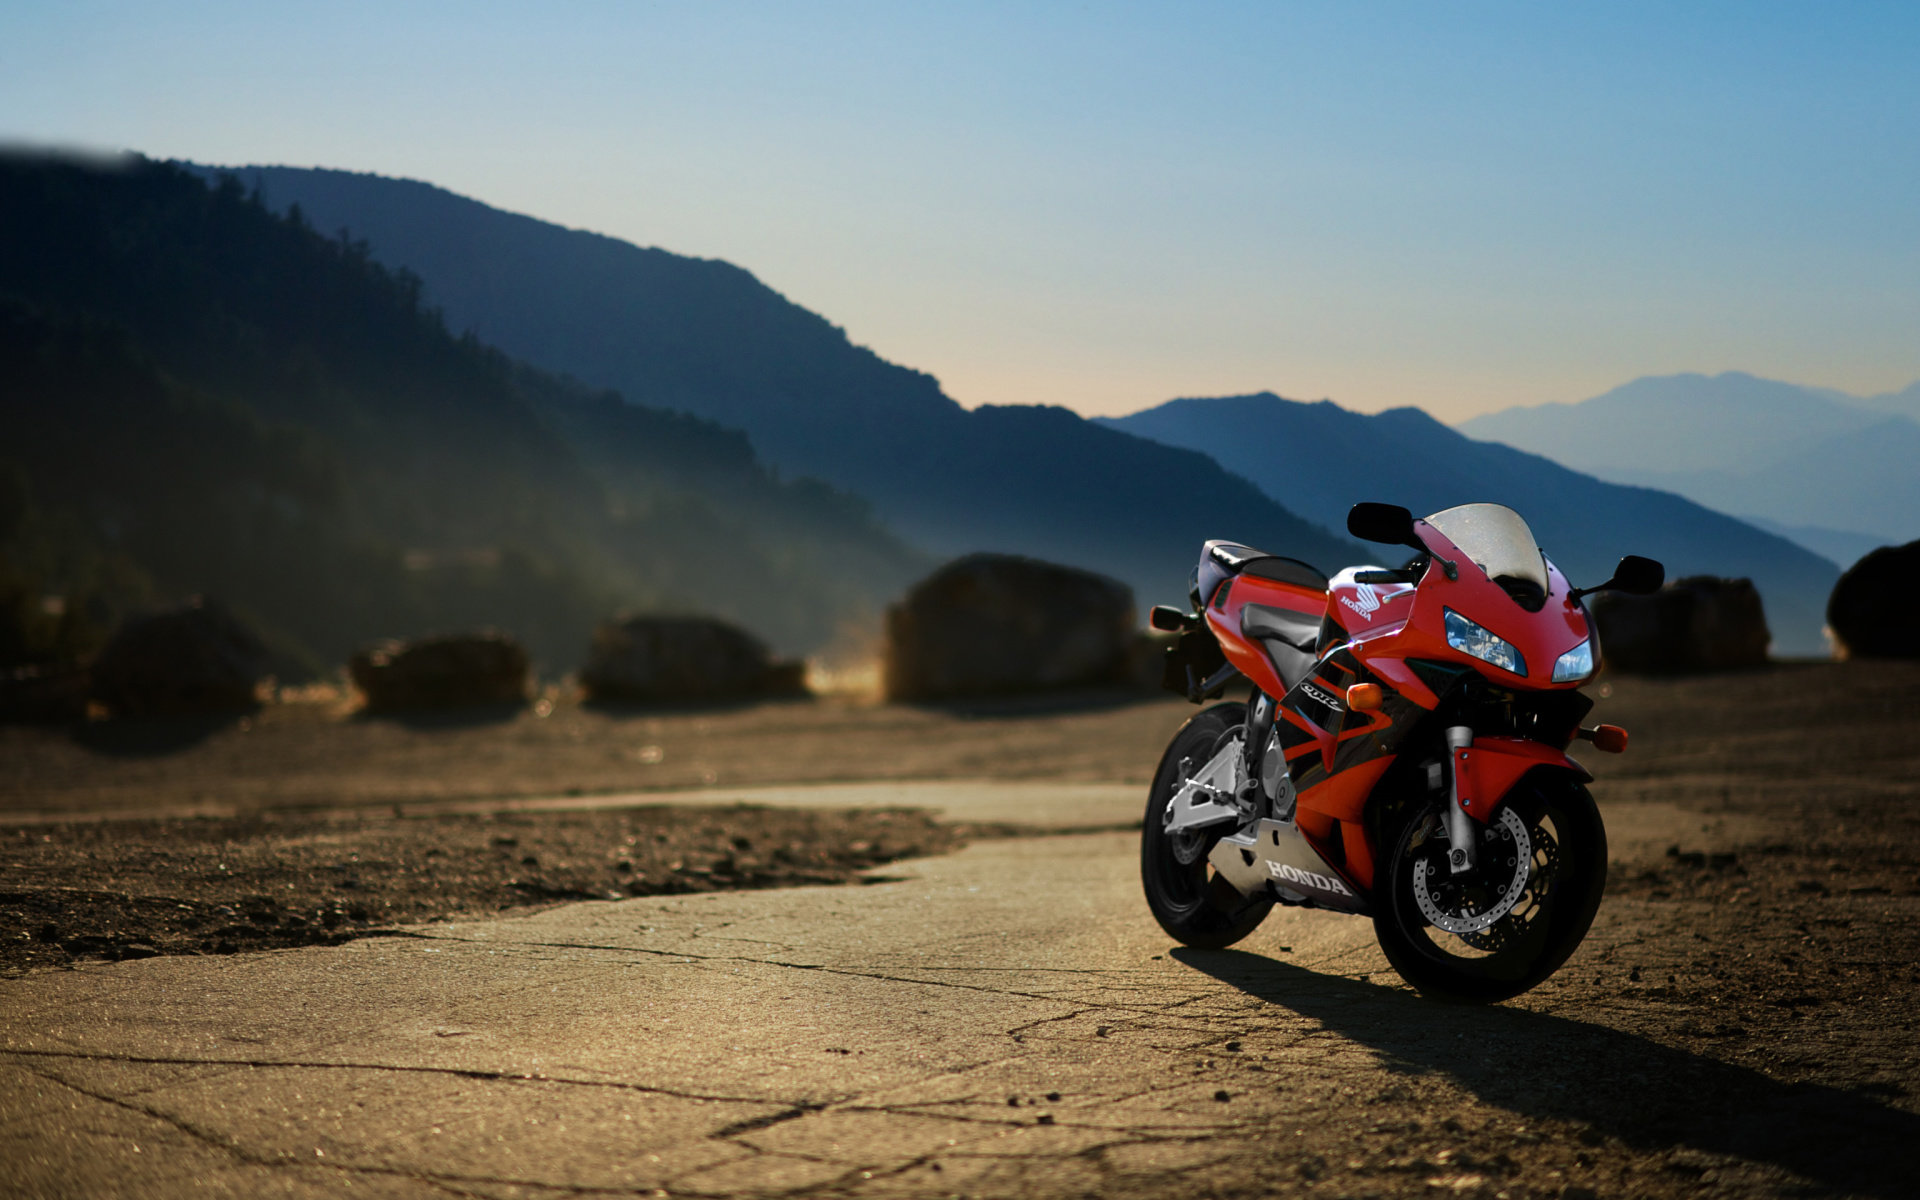 honda cbr600rr wallpapers 1920x1200 desktop backgrounds